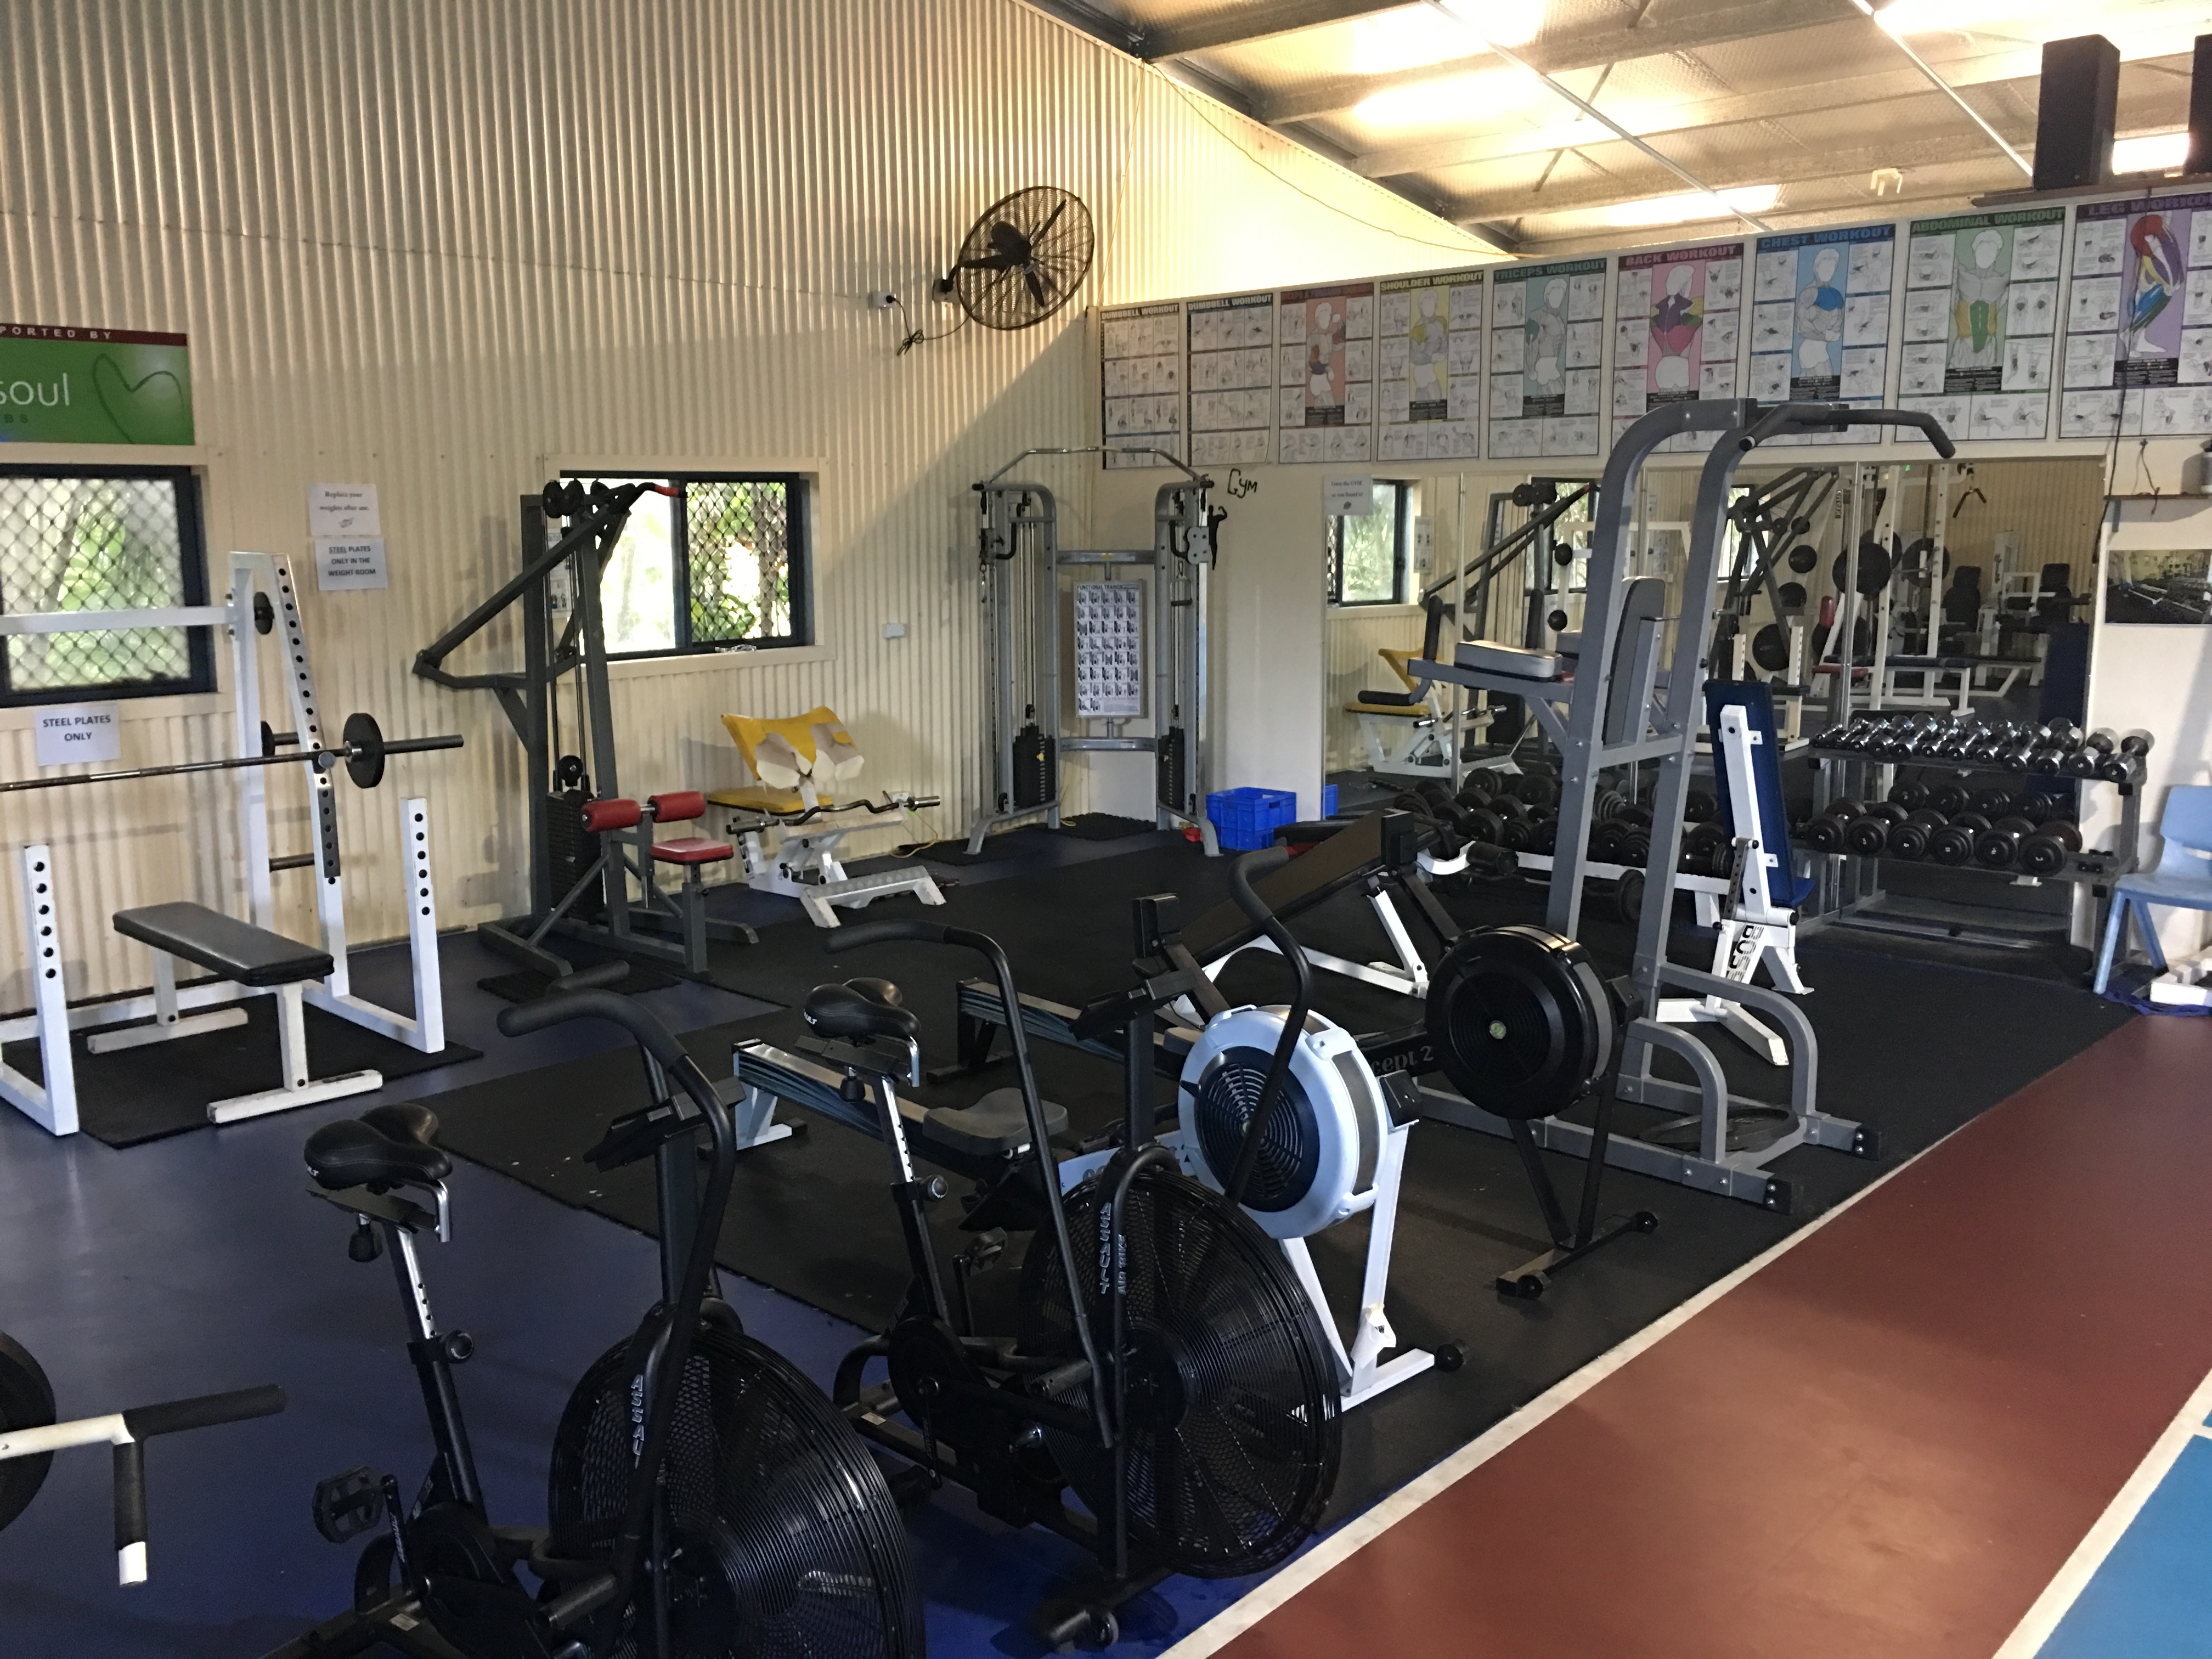 School Gym - Resistance Training Area 1